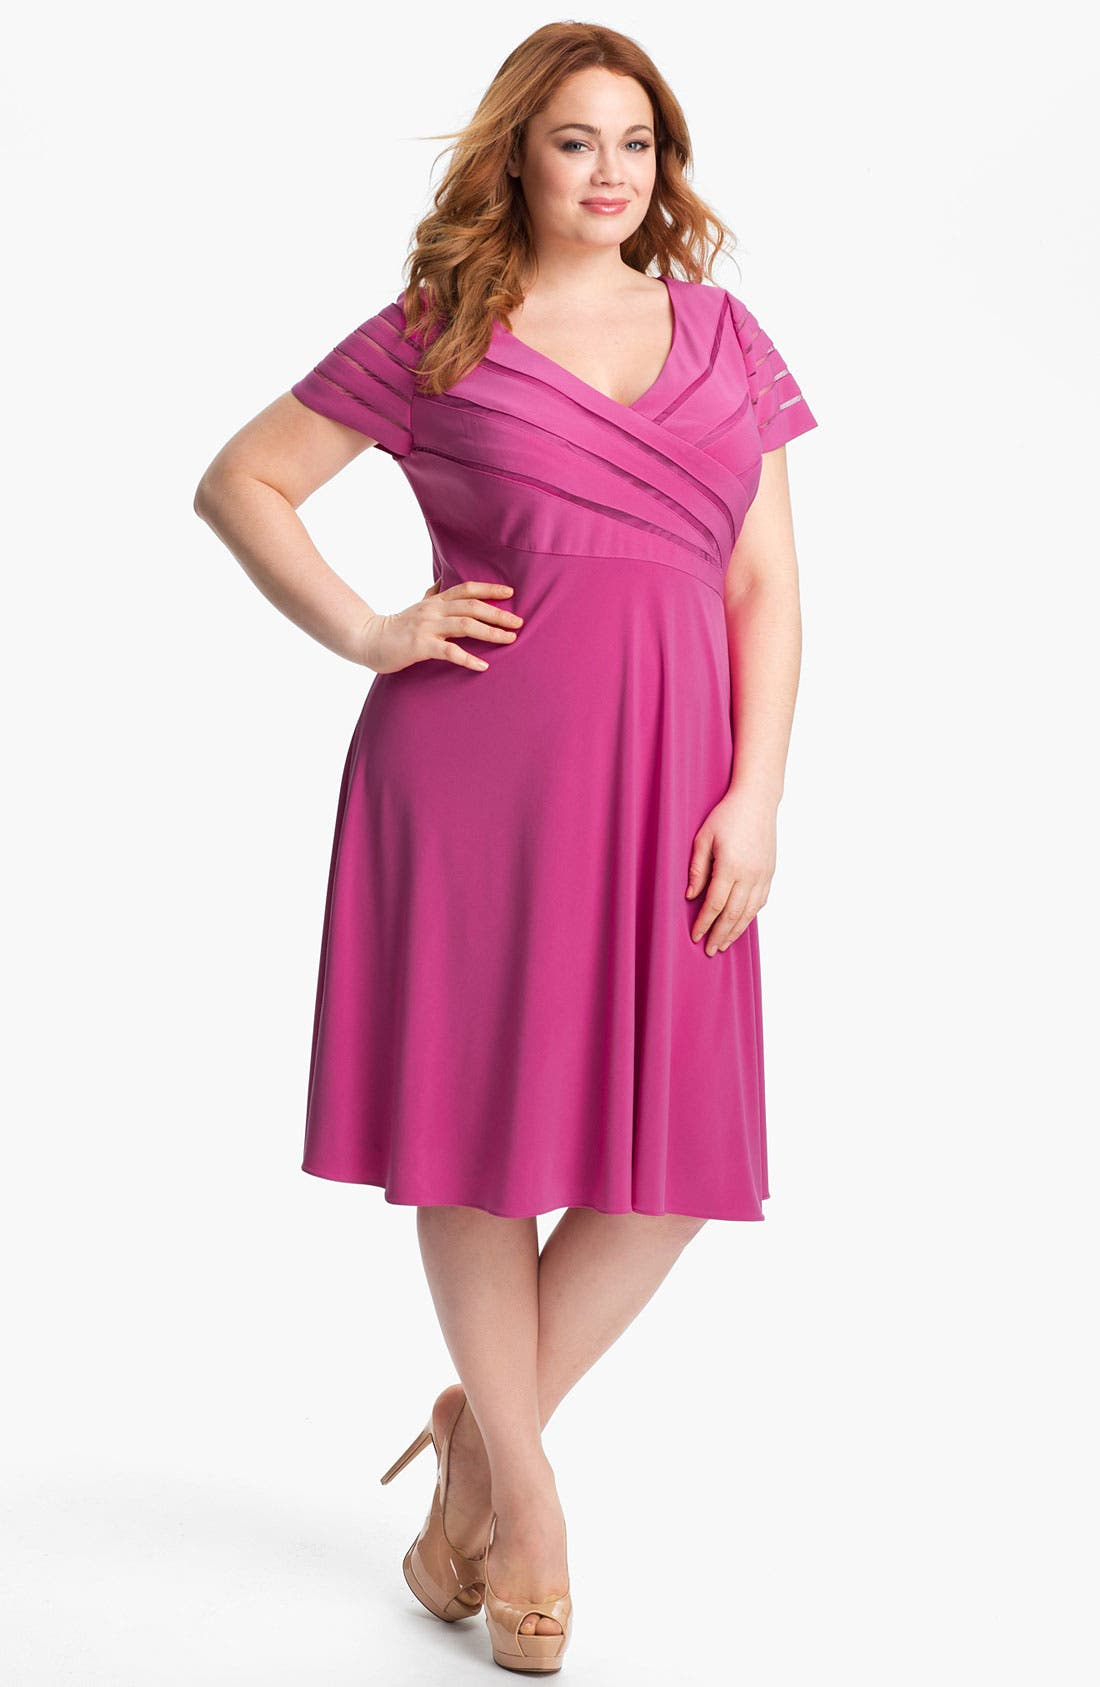 Alternate Image 1 Selected - Adrianna Papell Jersey Fit & Flare Dress (Plus Size)